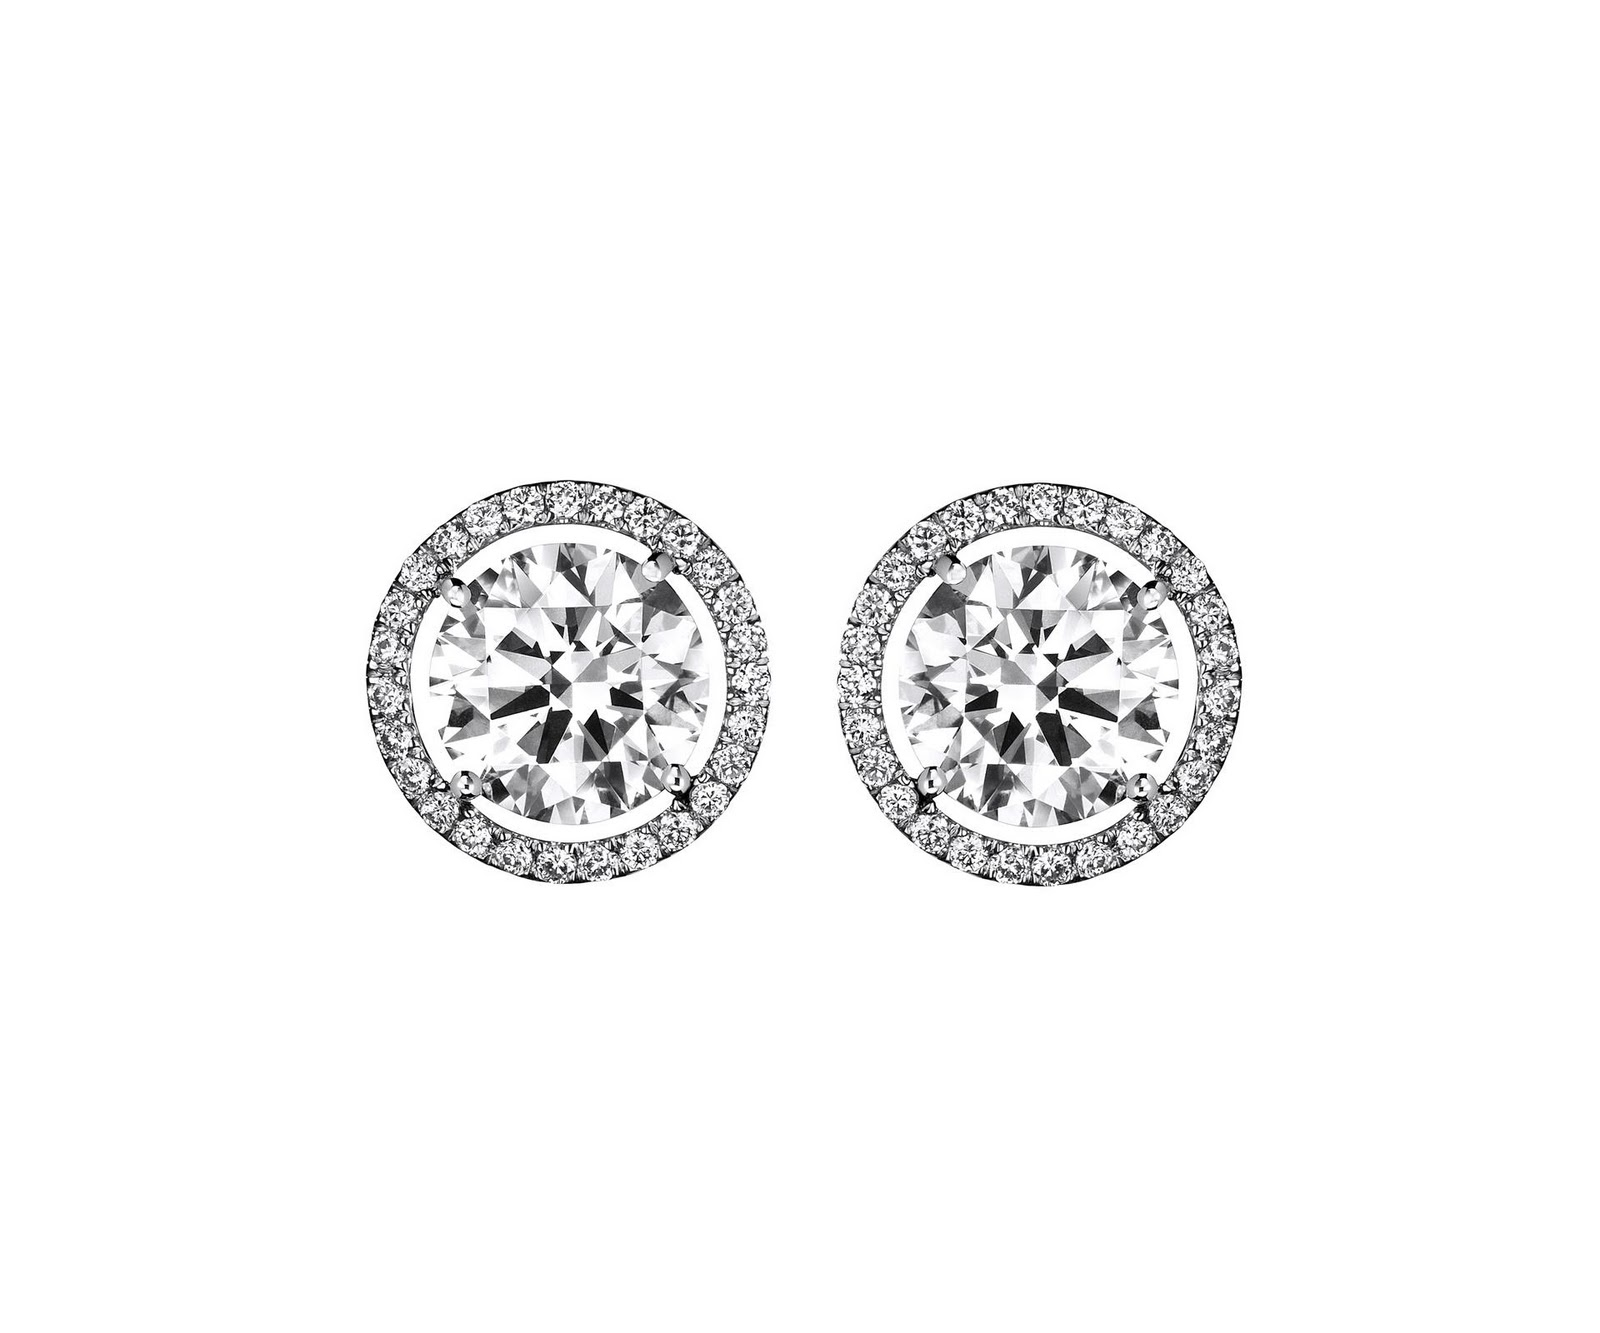 Earrings clipart diamond earring Stud Earrings Zone Cliparts Stud